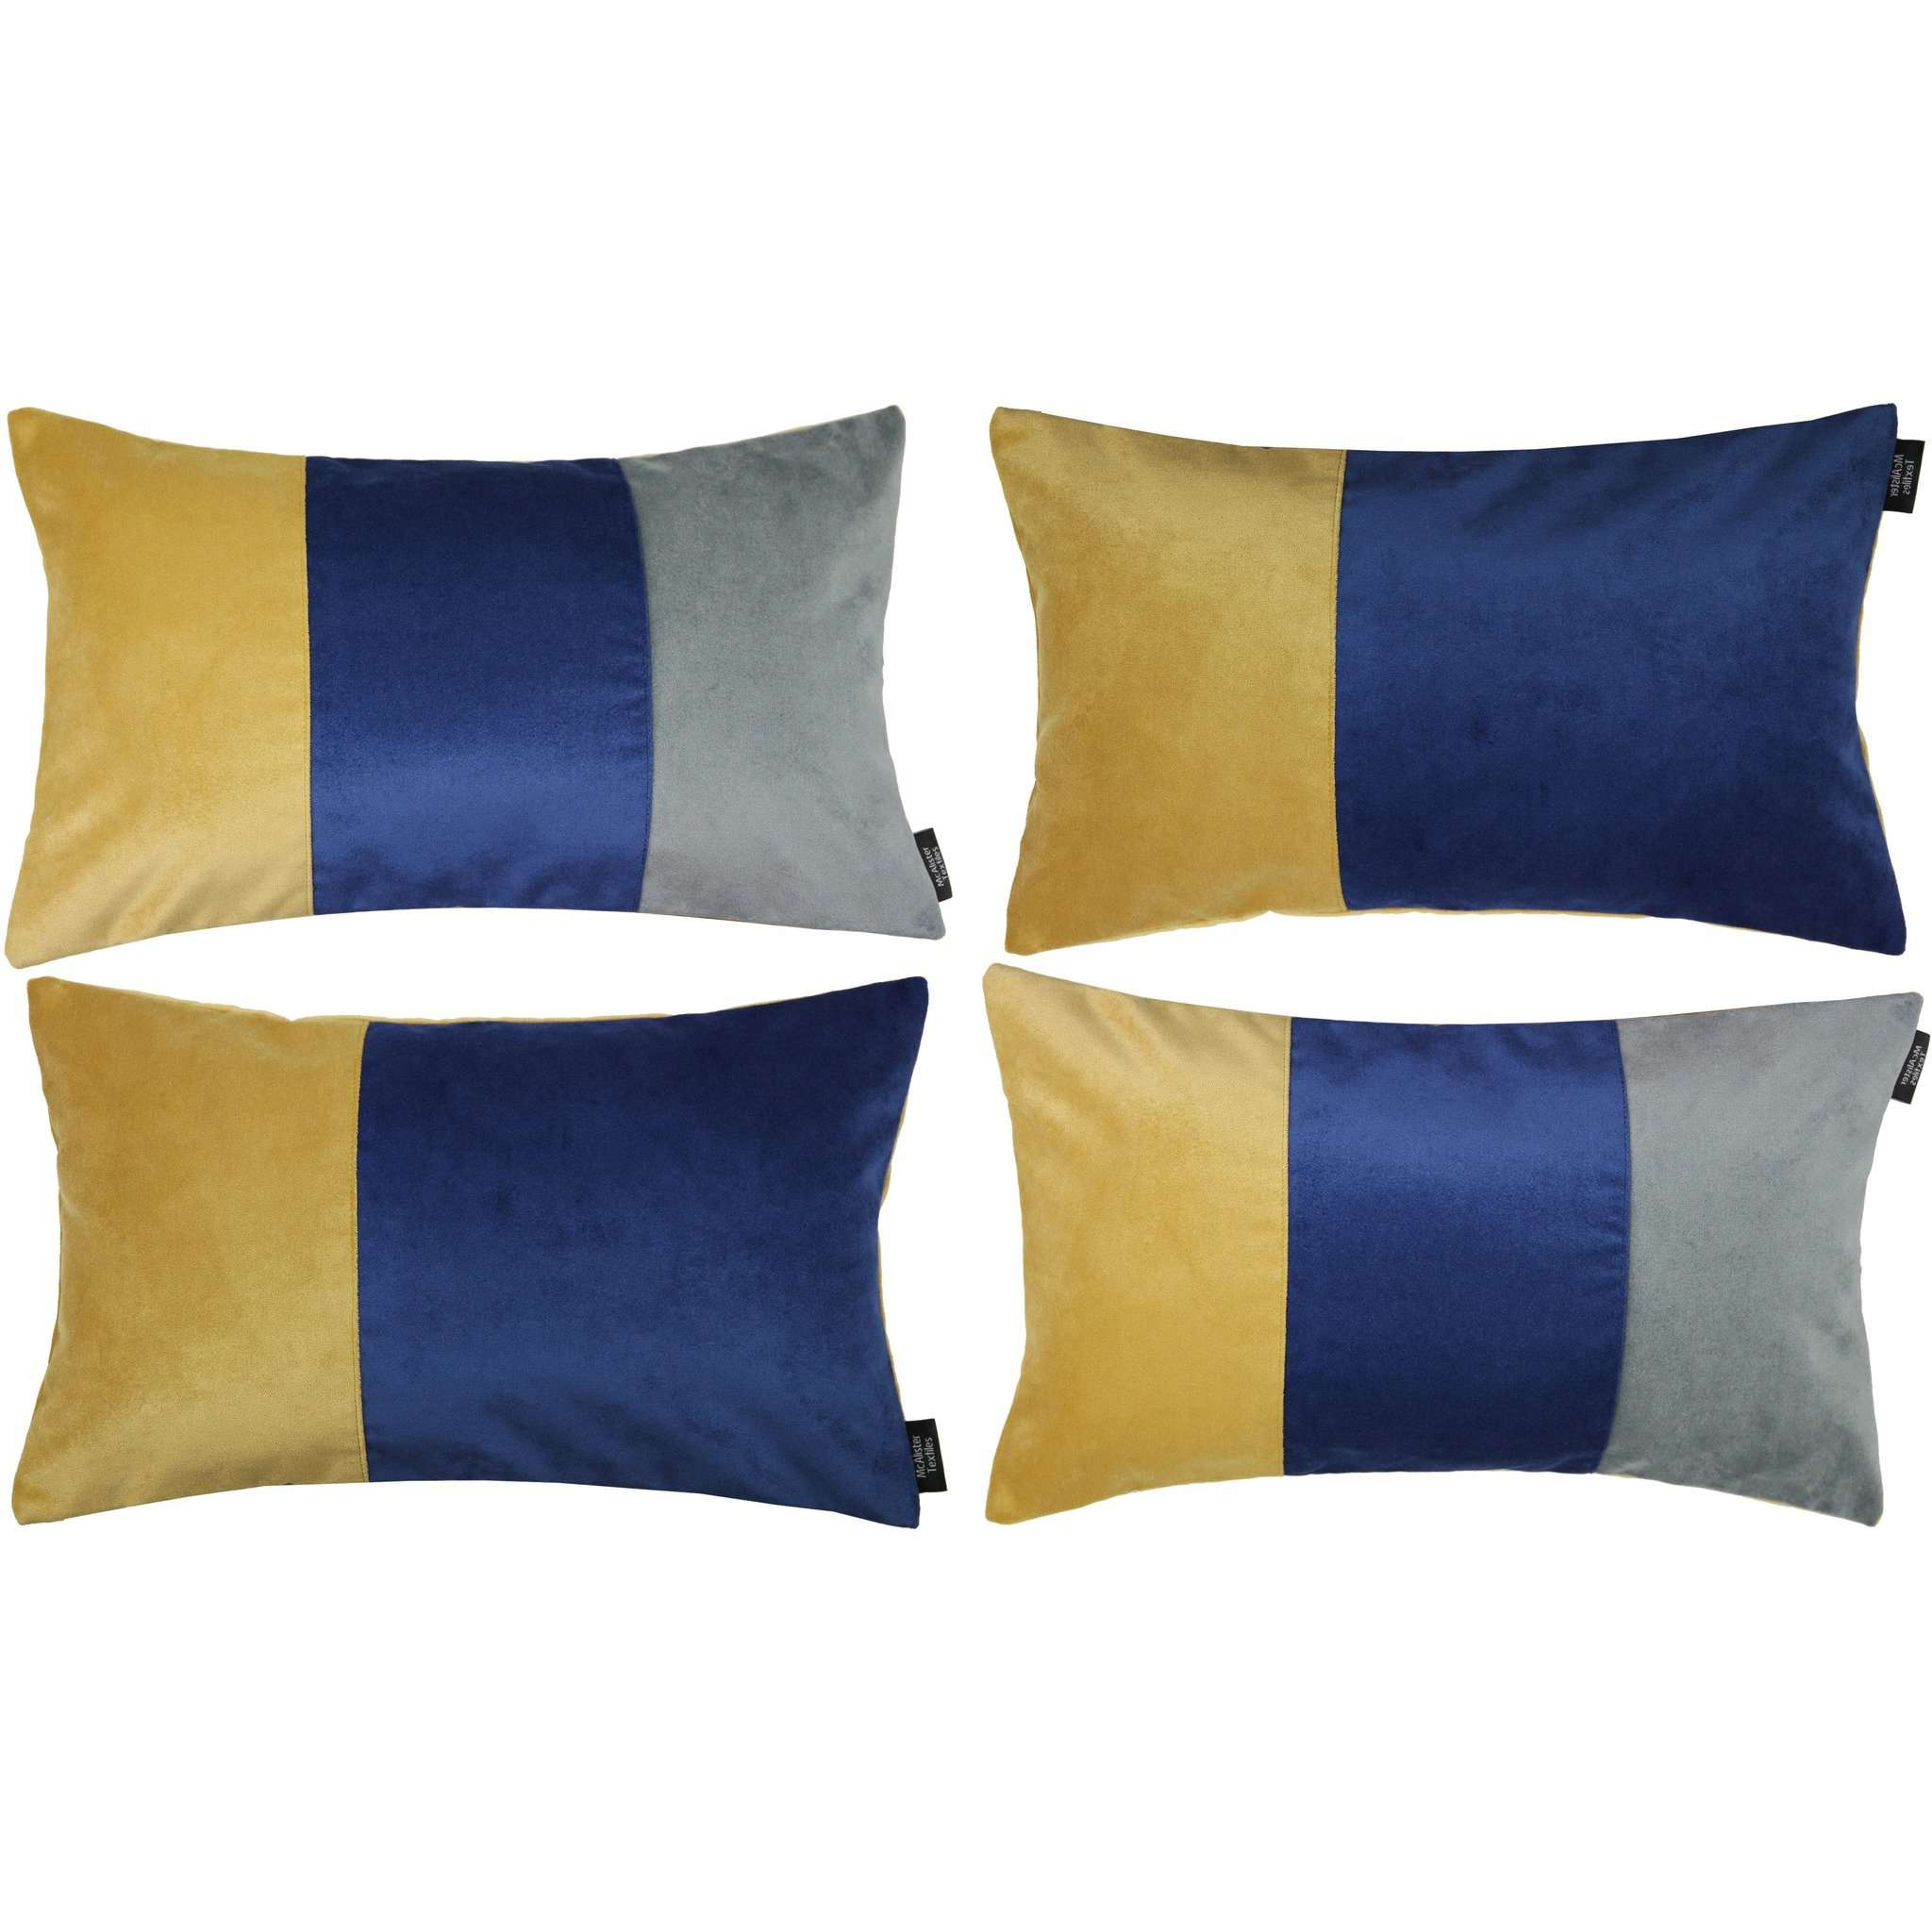 McAlister Textiles Patchwork Velvet Navy, Yellow + Grey Pillow Set Pillow Set of 4 Cushion Covers